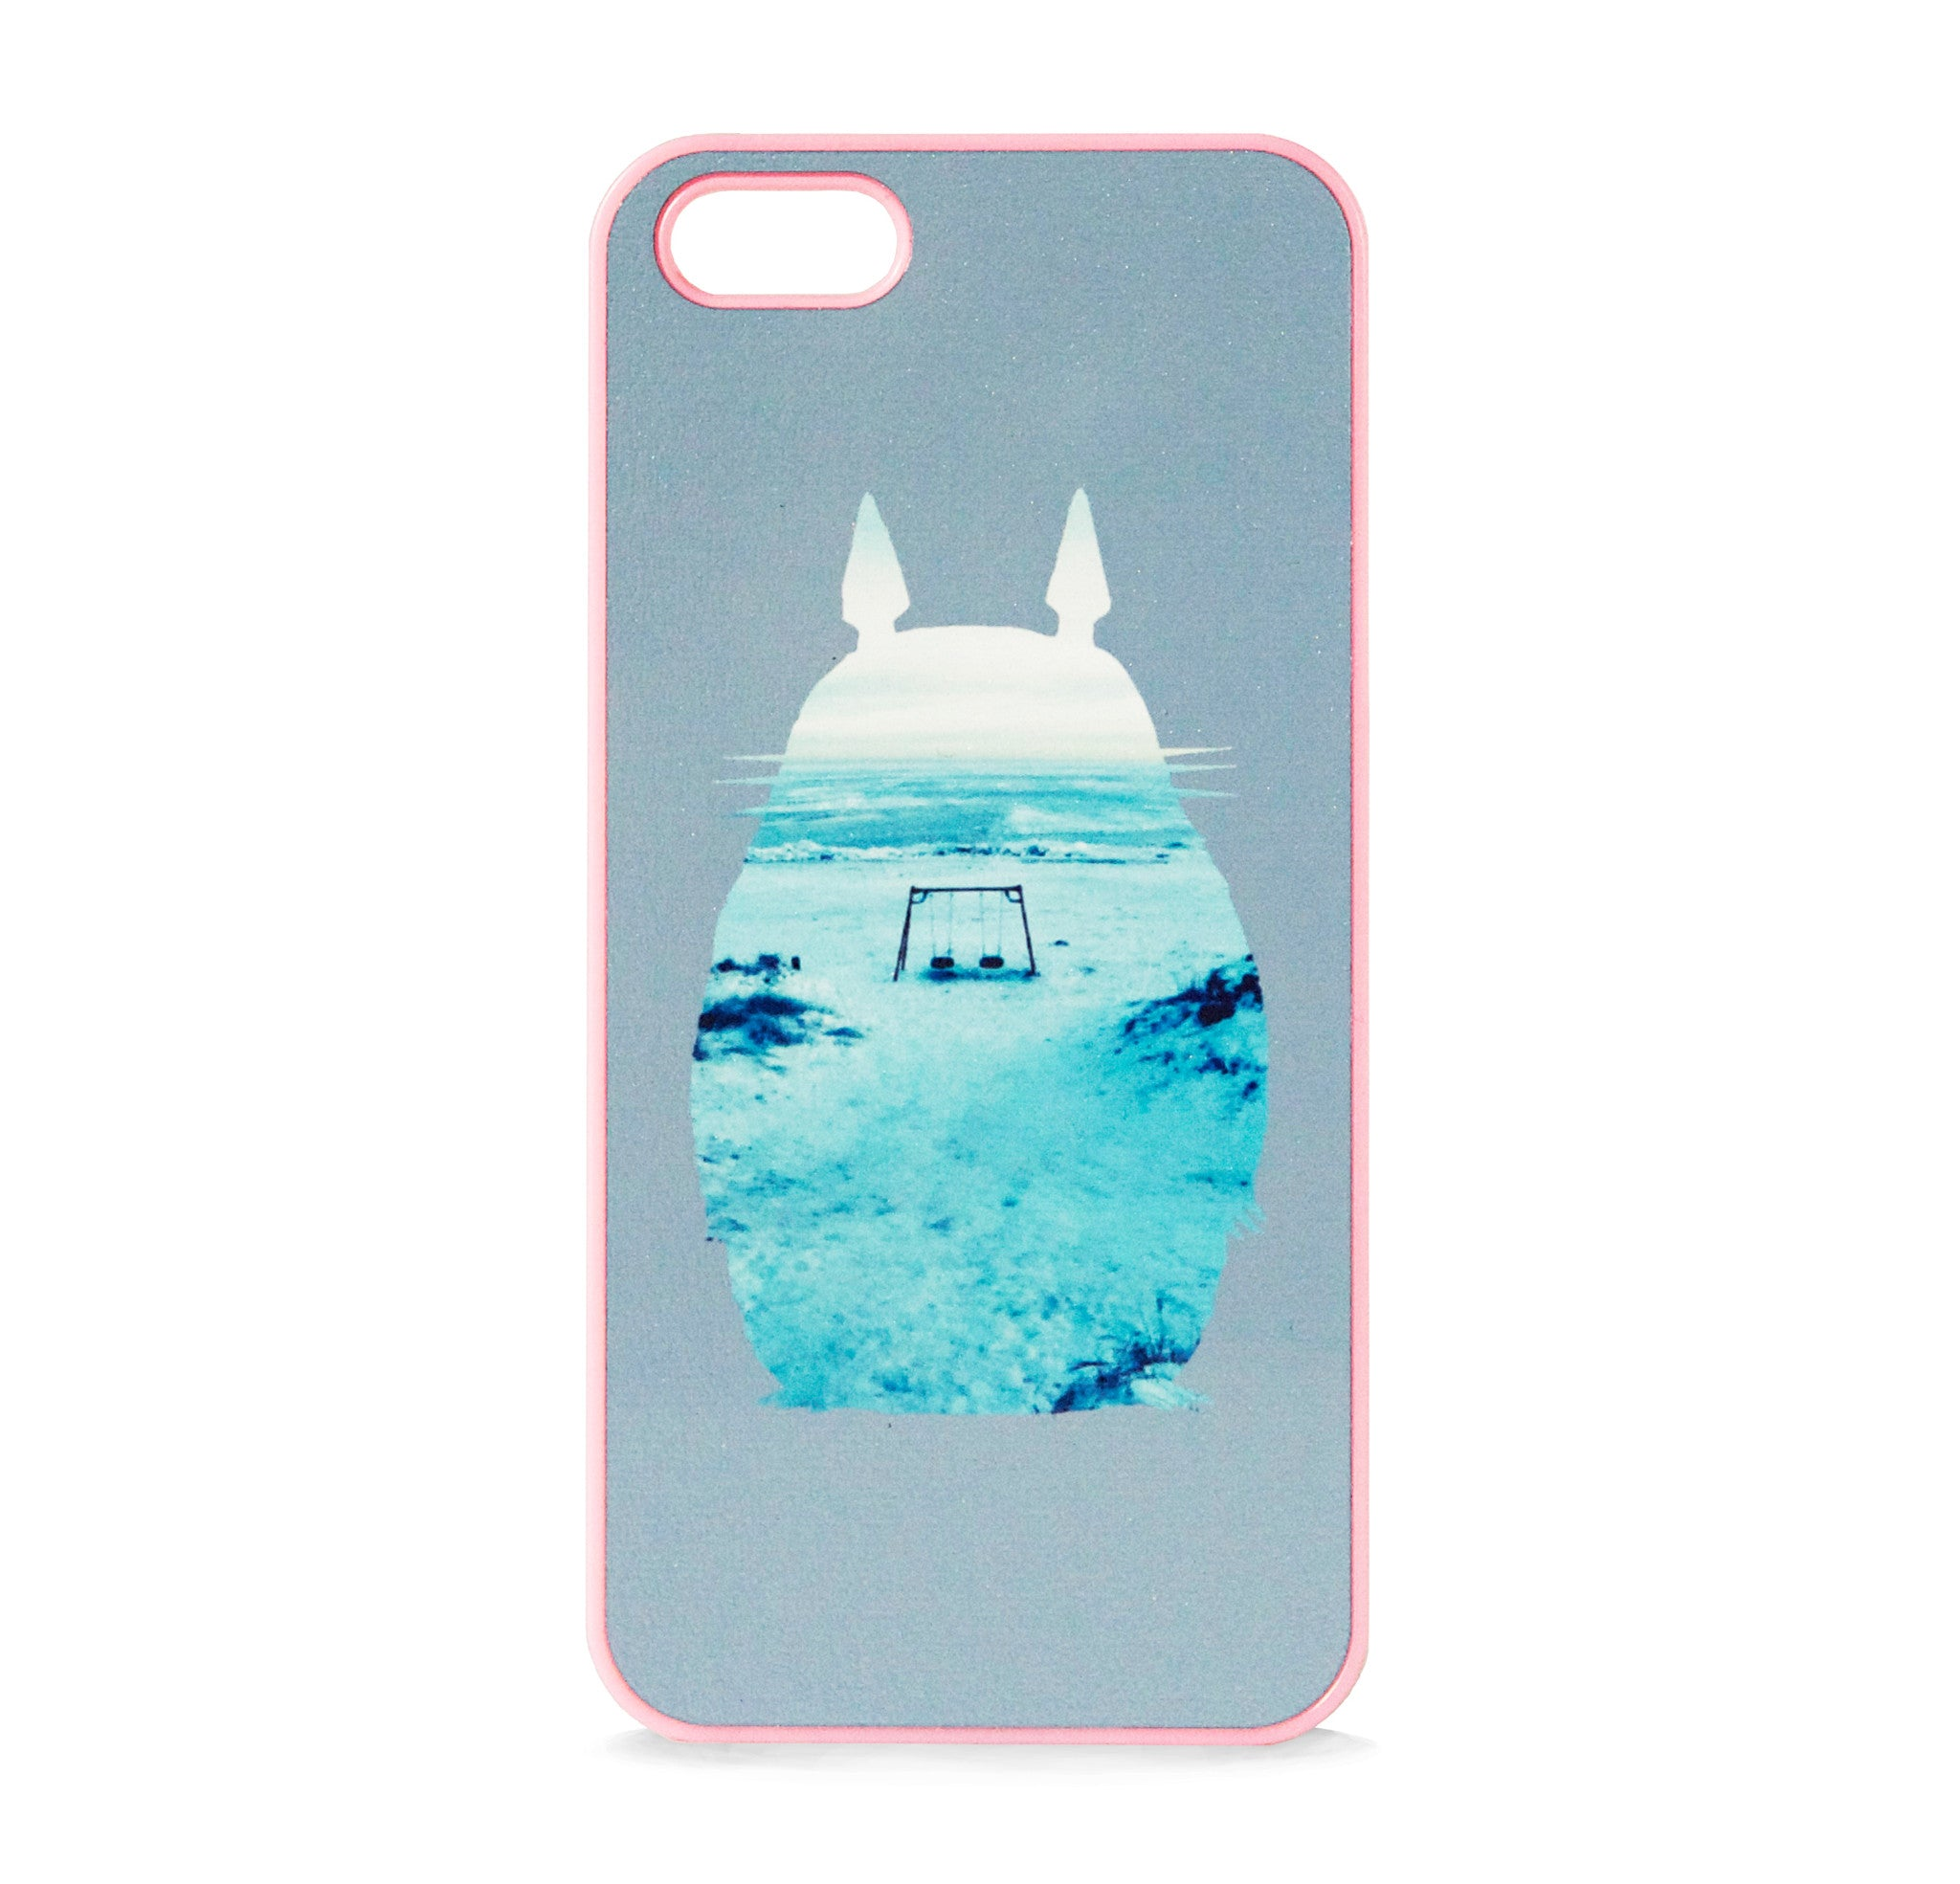 TOTORO GREY WINTER IPHONE 5/5S CASE